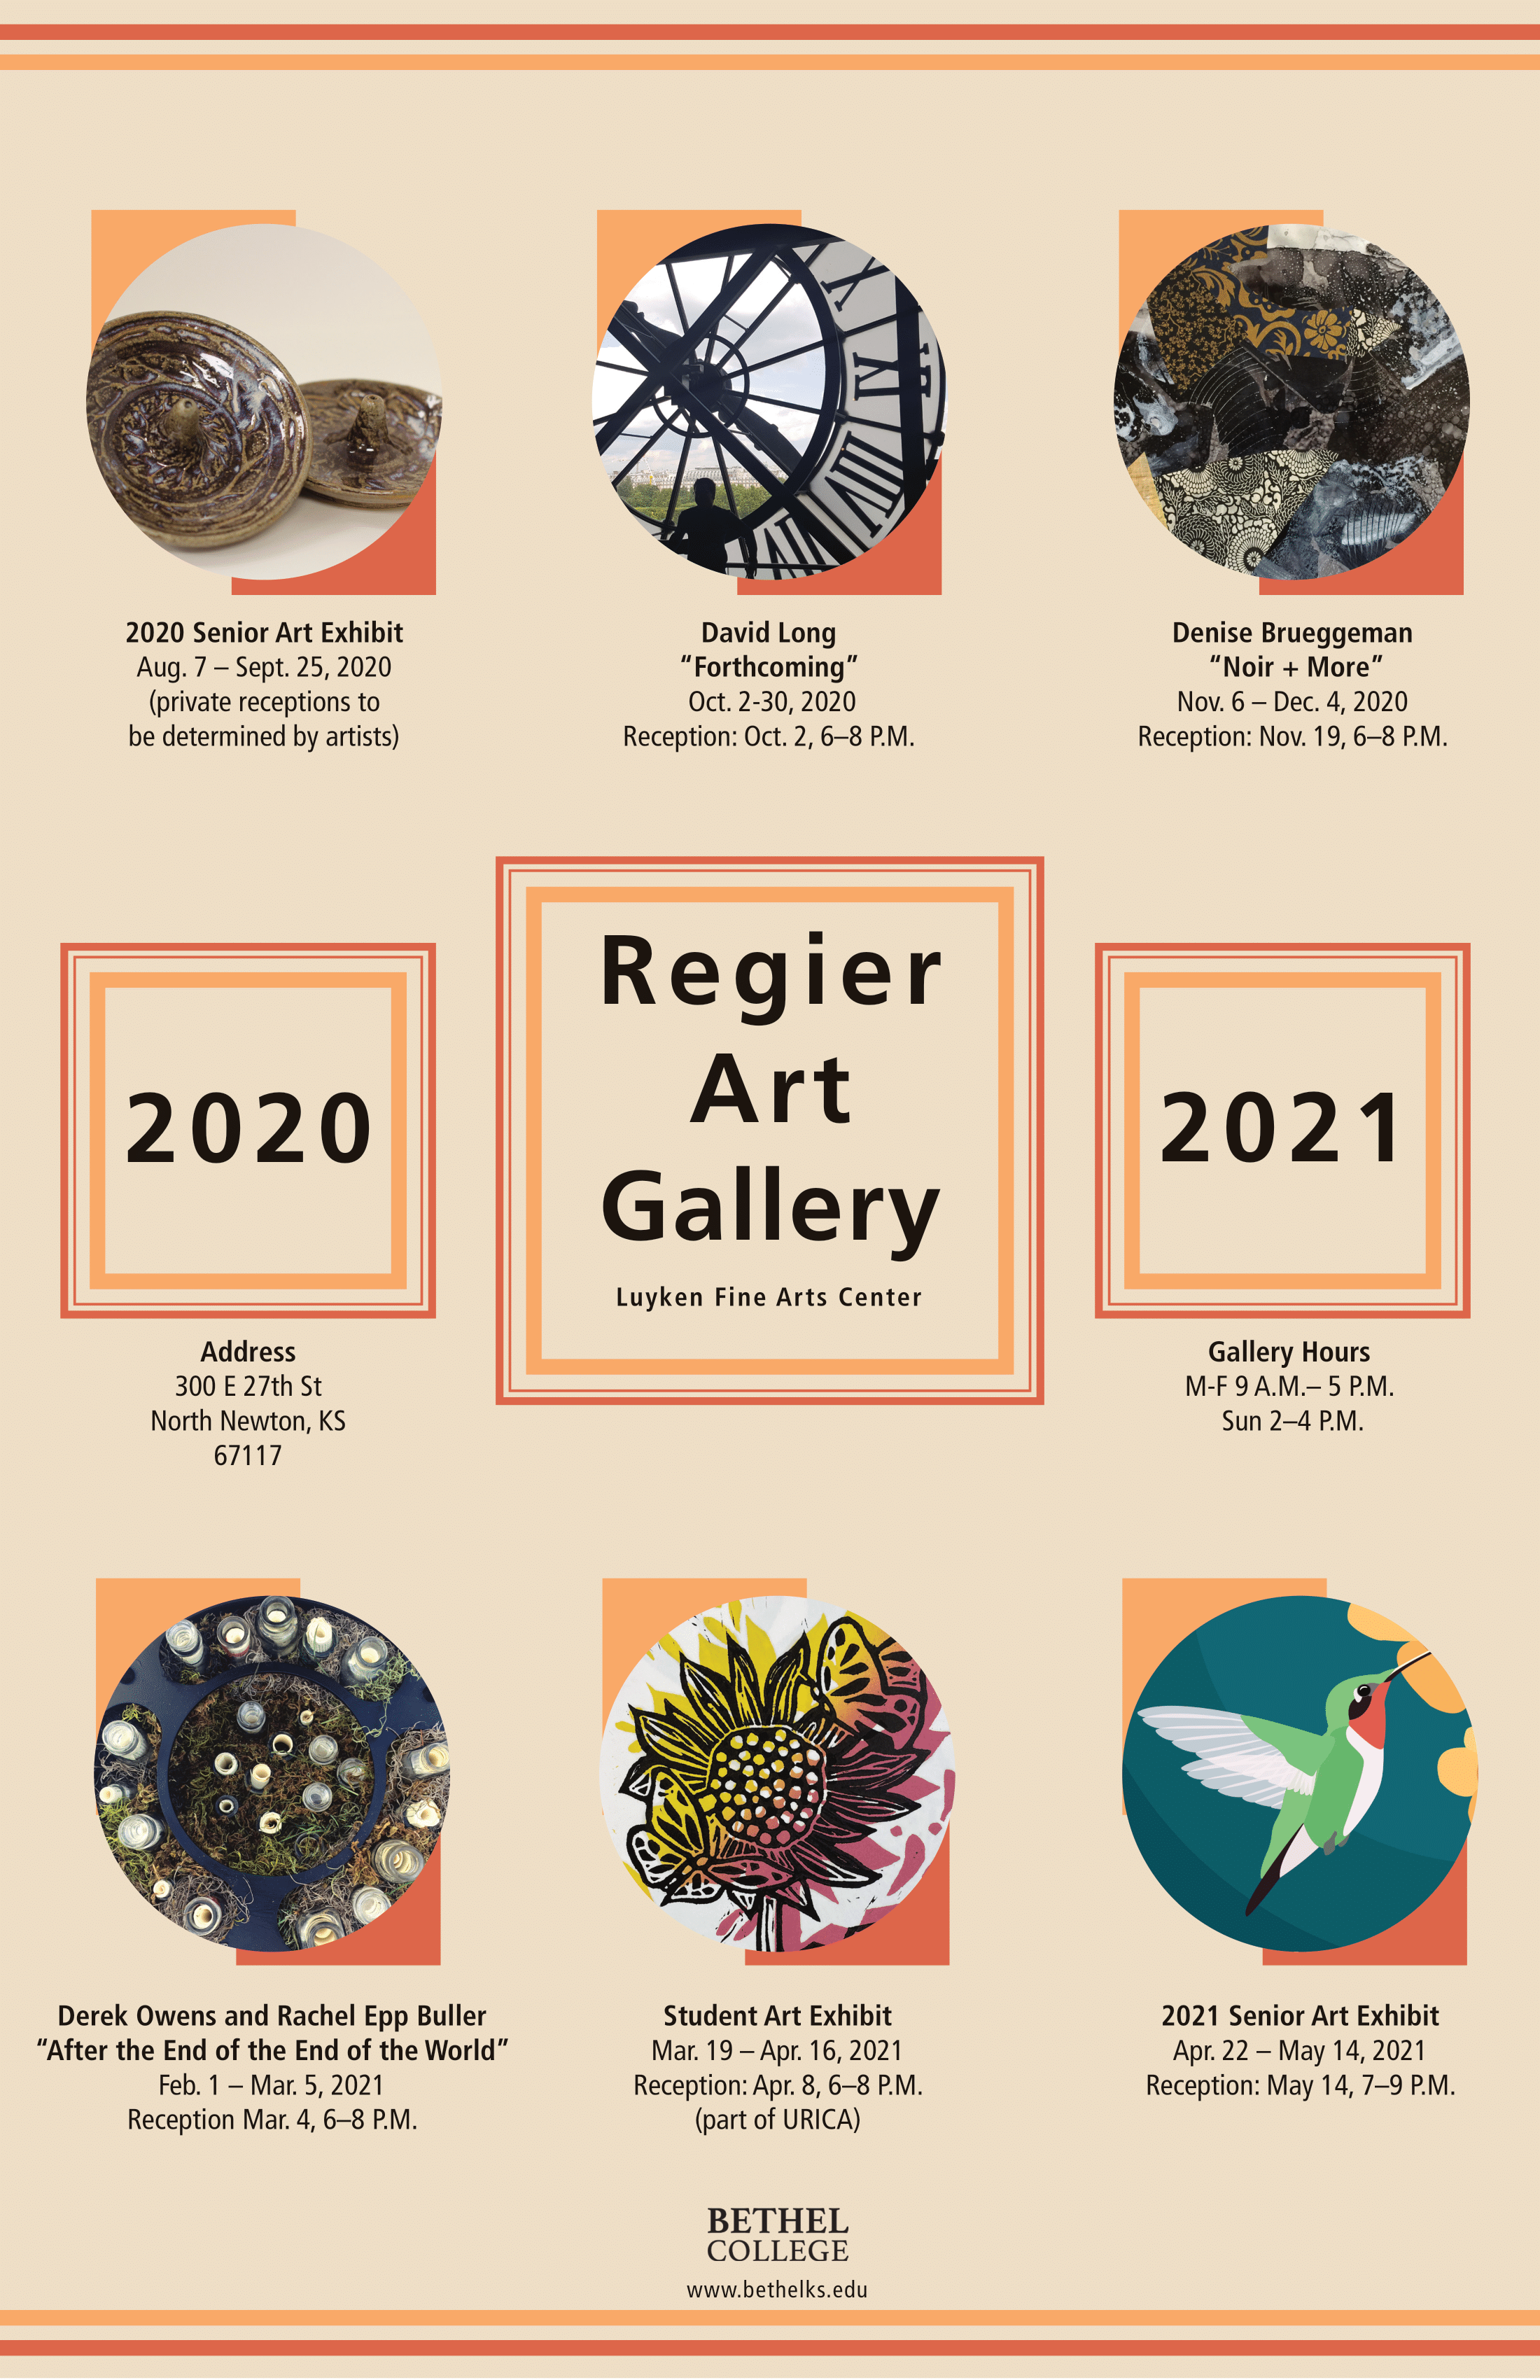 2020 2021 Regier Art Gallery Schedule